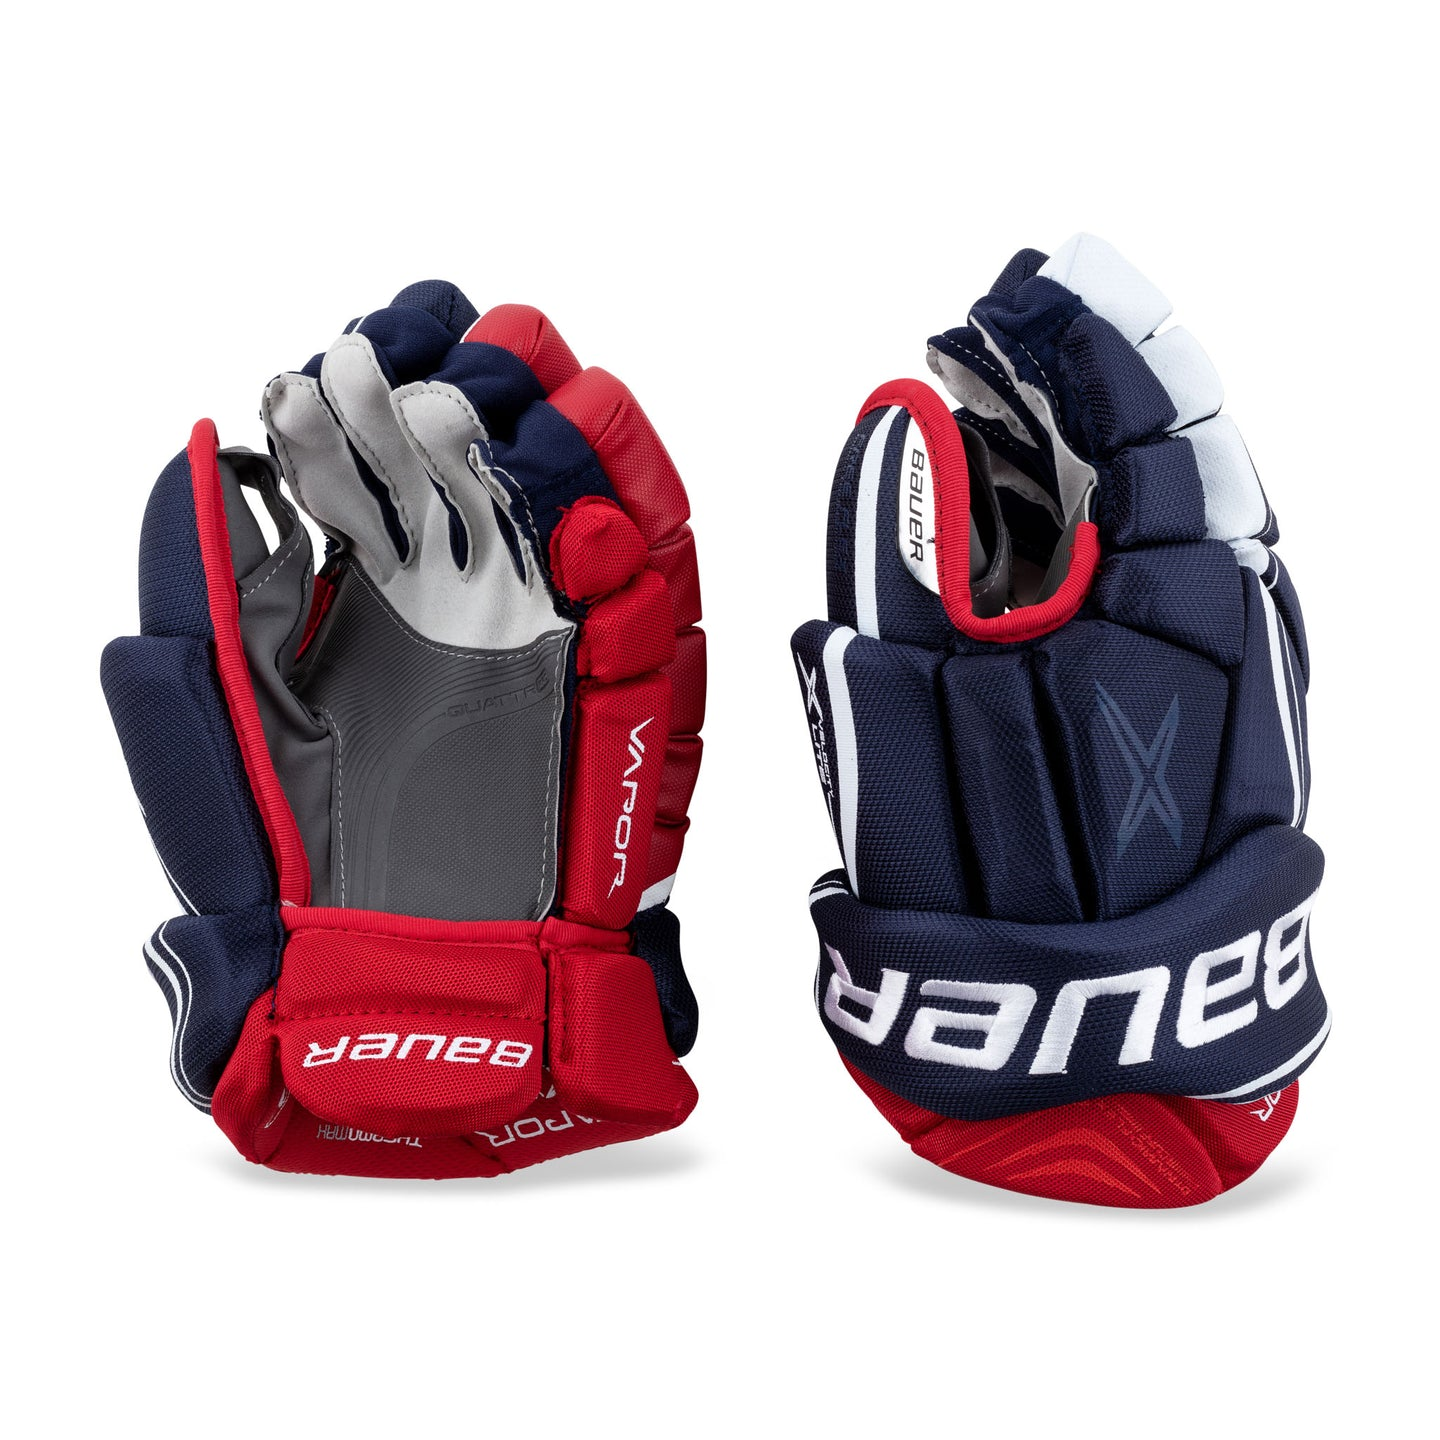 Bauer Vapor X Velocity Lite Senior Hockey Gloves (2018)